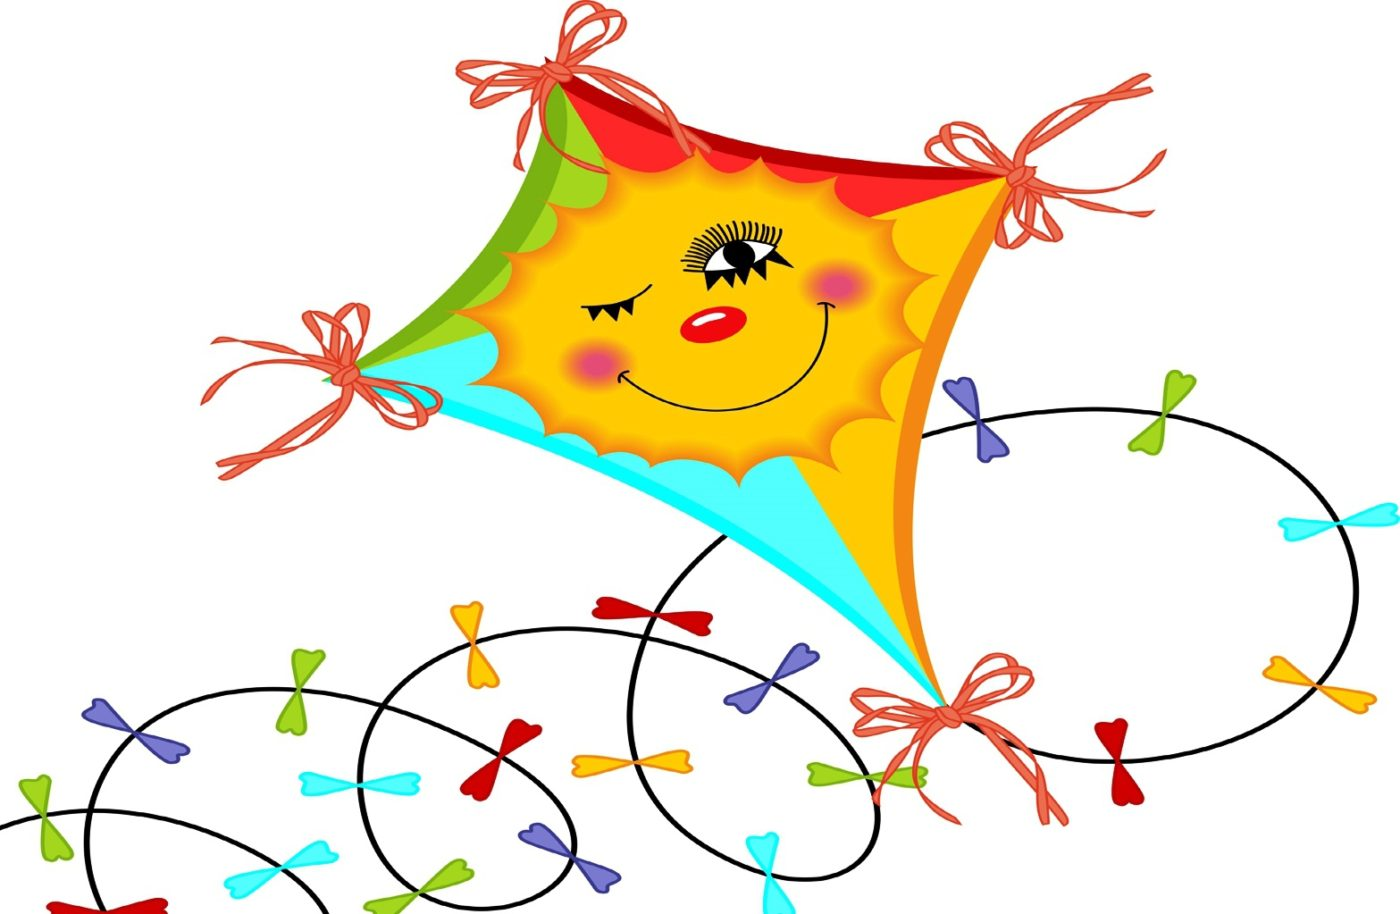 happy-kite-flying-day-with-funny-kites